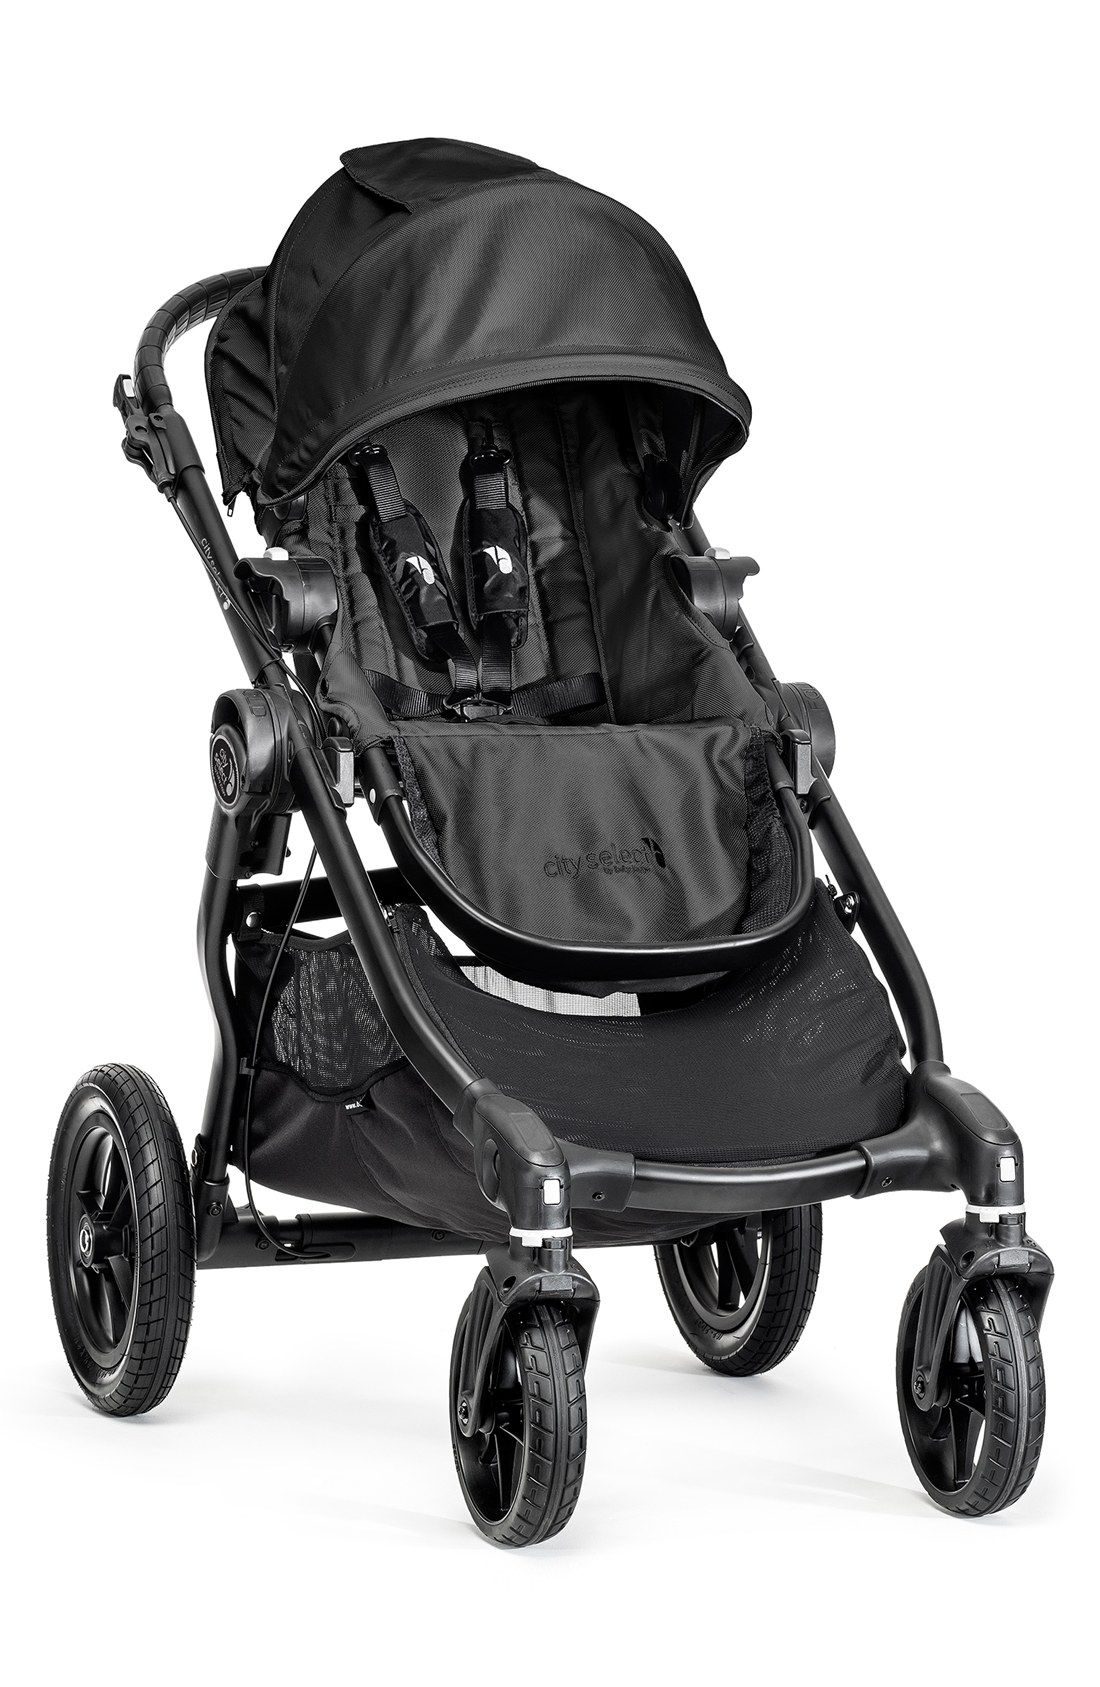 Baby Jogger City Select Single Stroller Baby Jogger City Select City Select Stroller Baby Jogger City Select Stroller